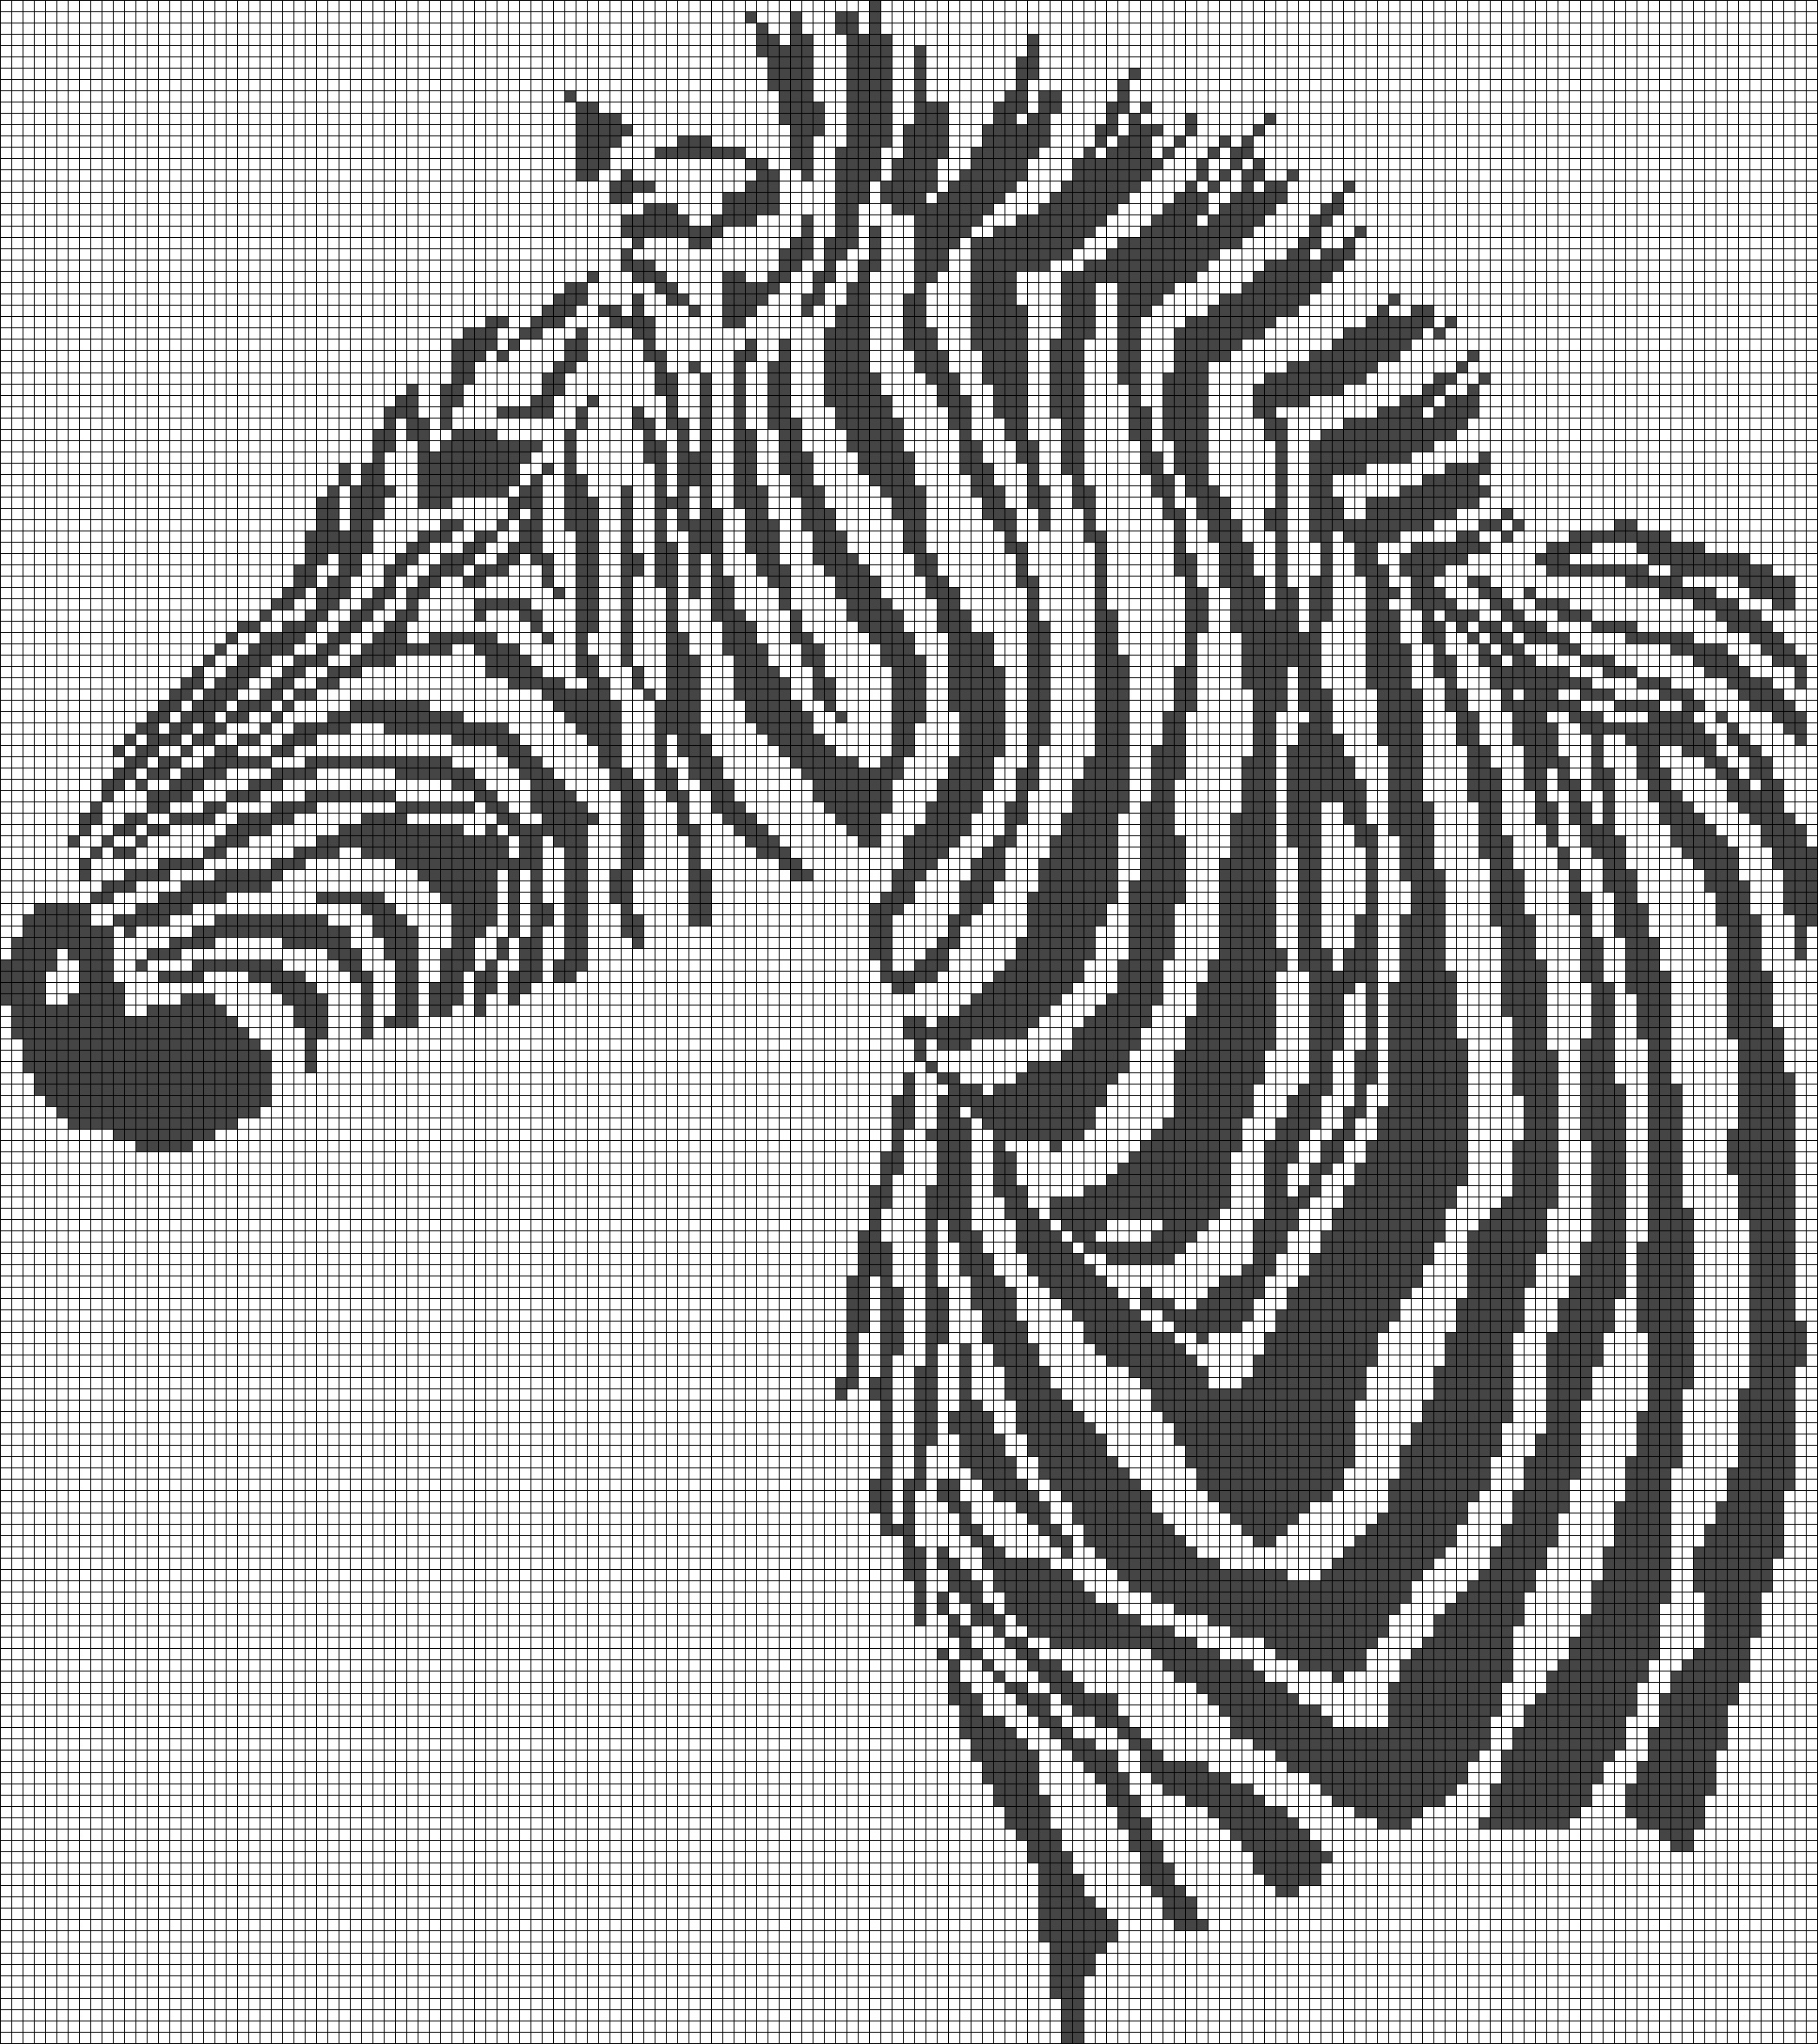 Zebra pattern / chart for cross stitch, crochet, knitting, knotting ...